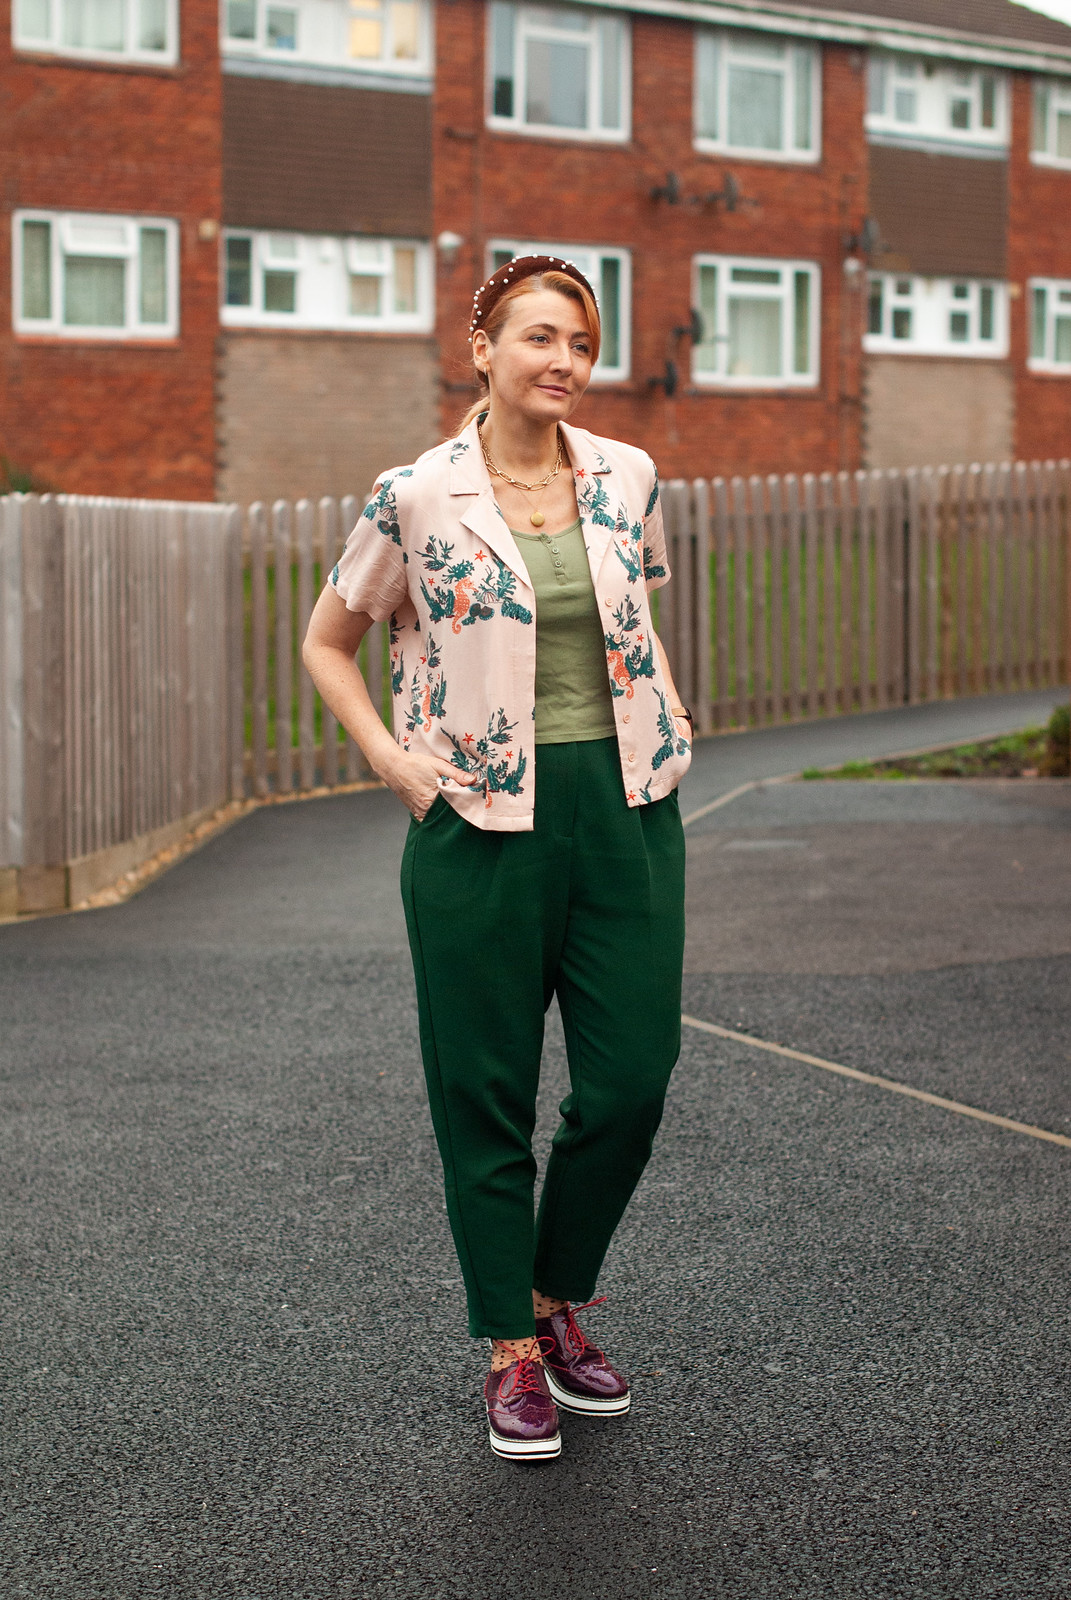 Can You Wear a Pyjama Top as Outerwear? | Not Dressed As Lamb, style for over 40 women